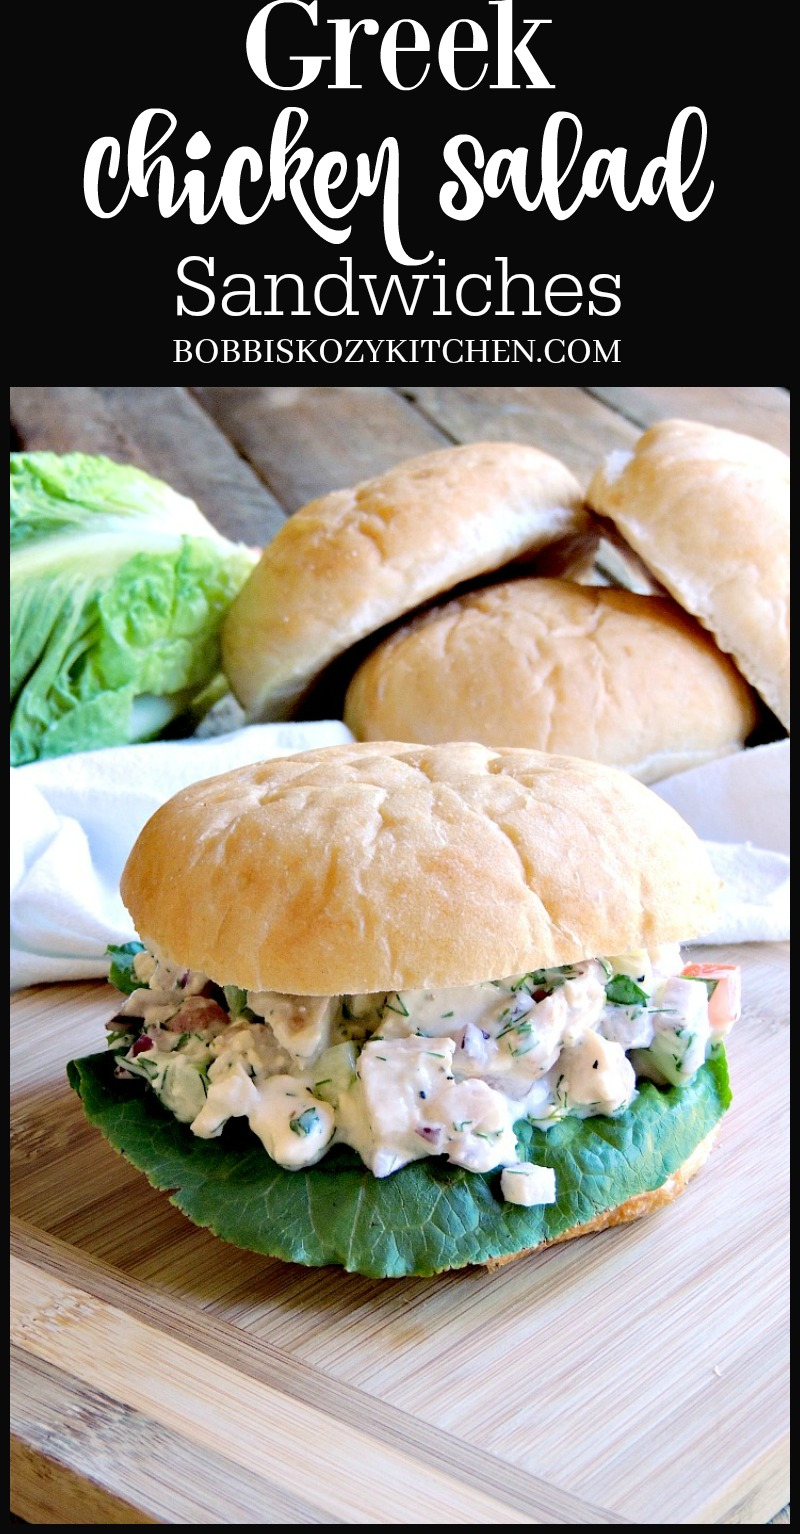 Greek Chicken Salad Sandwiches With fresh cucumber, tomato, and onion, plus ZERO mayo, this is a chicken salad that you can feel good about serving to your family! #Greek #chicken #salad #sandwich #healthy #Nomayo #recipe | bobbiskozykitchen.com